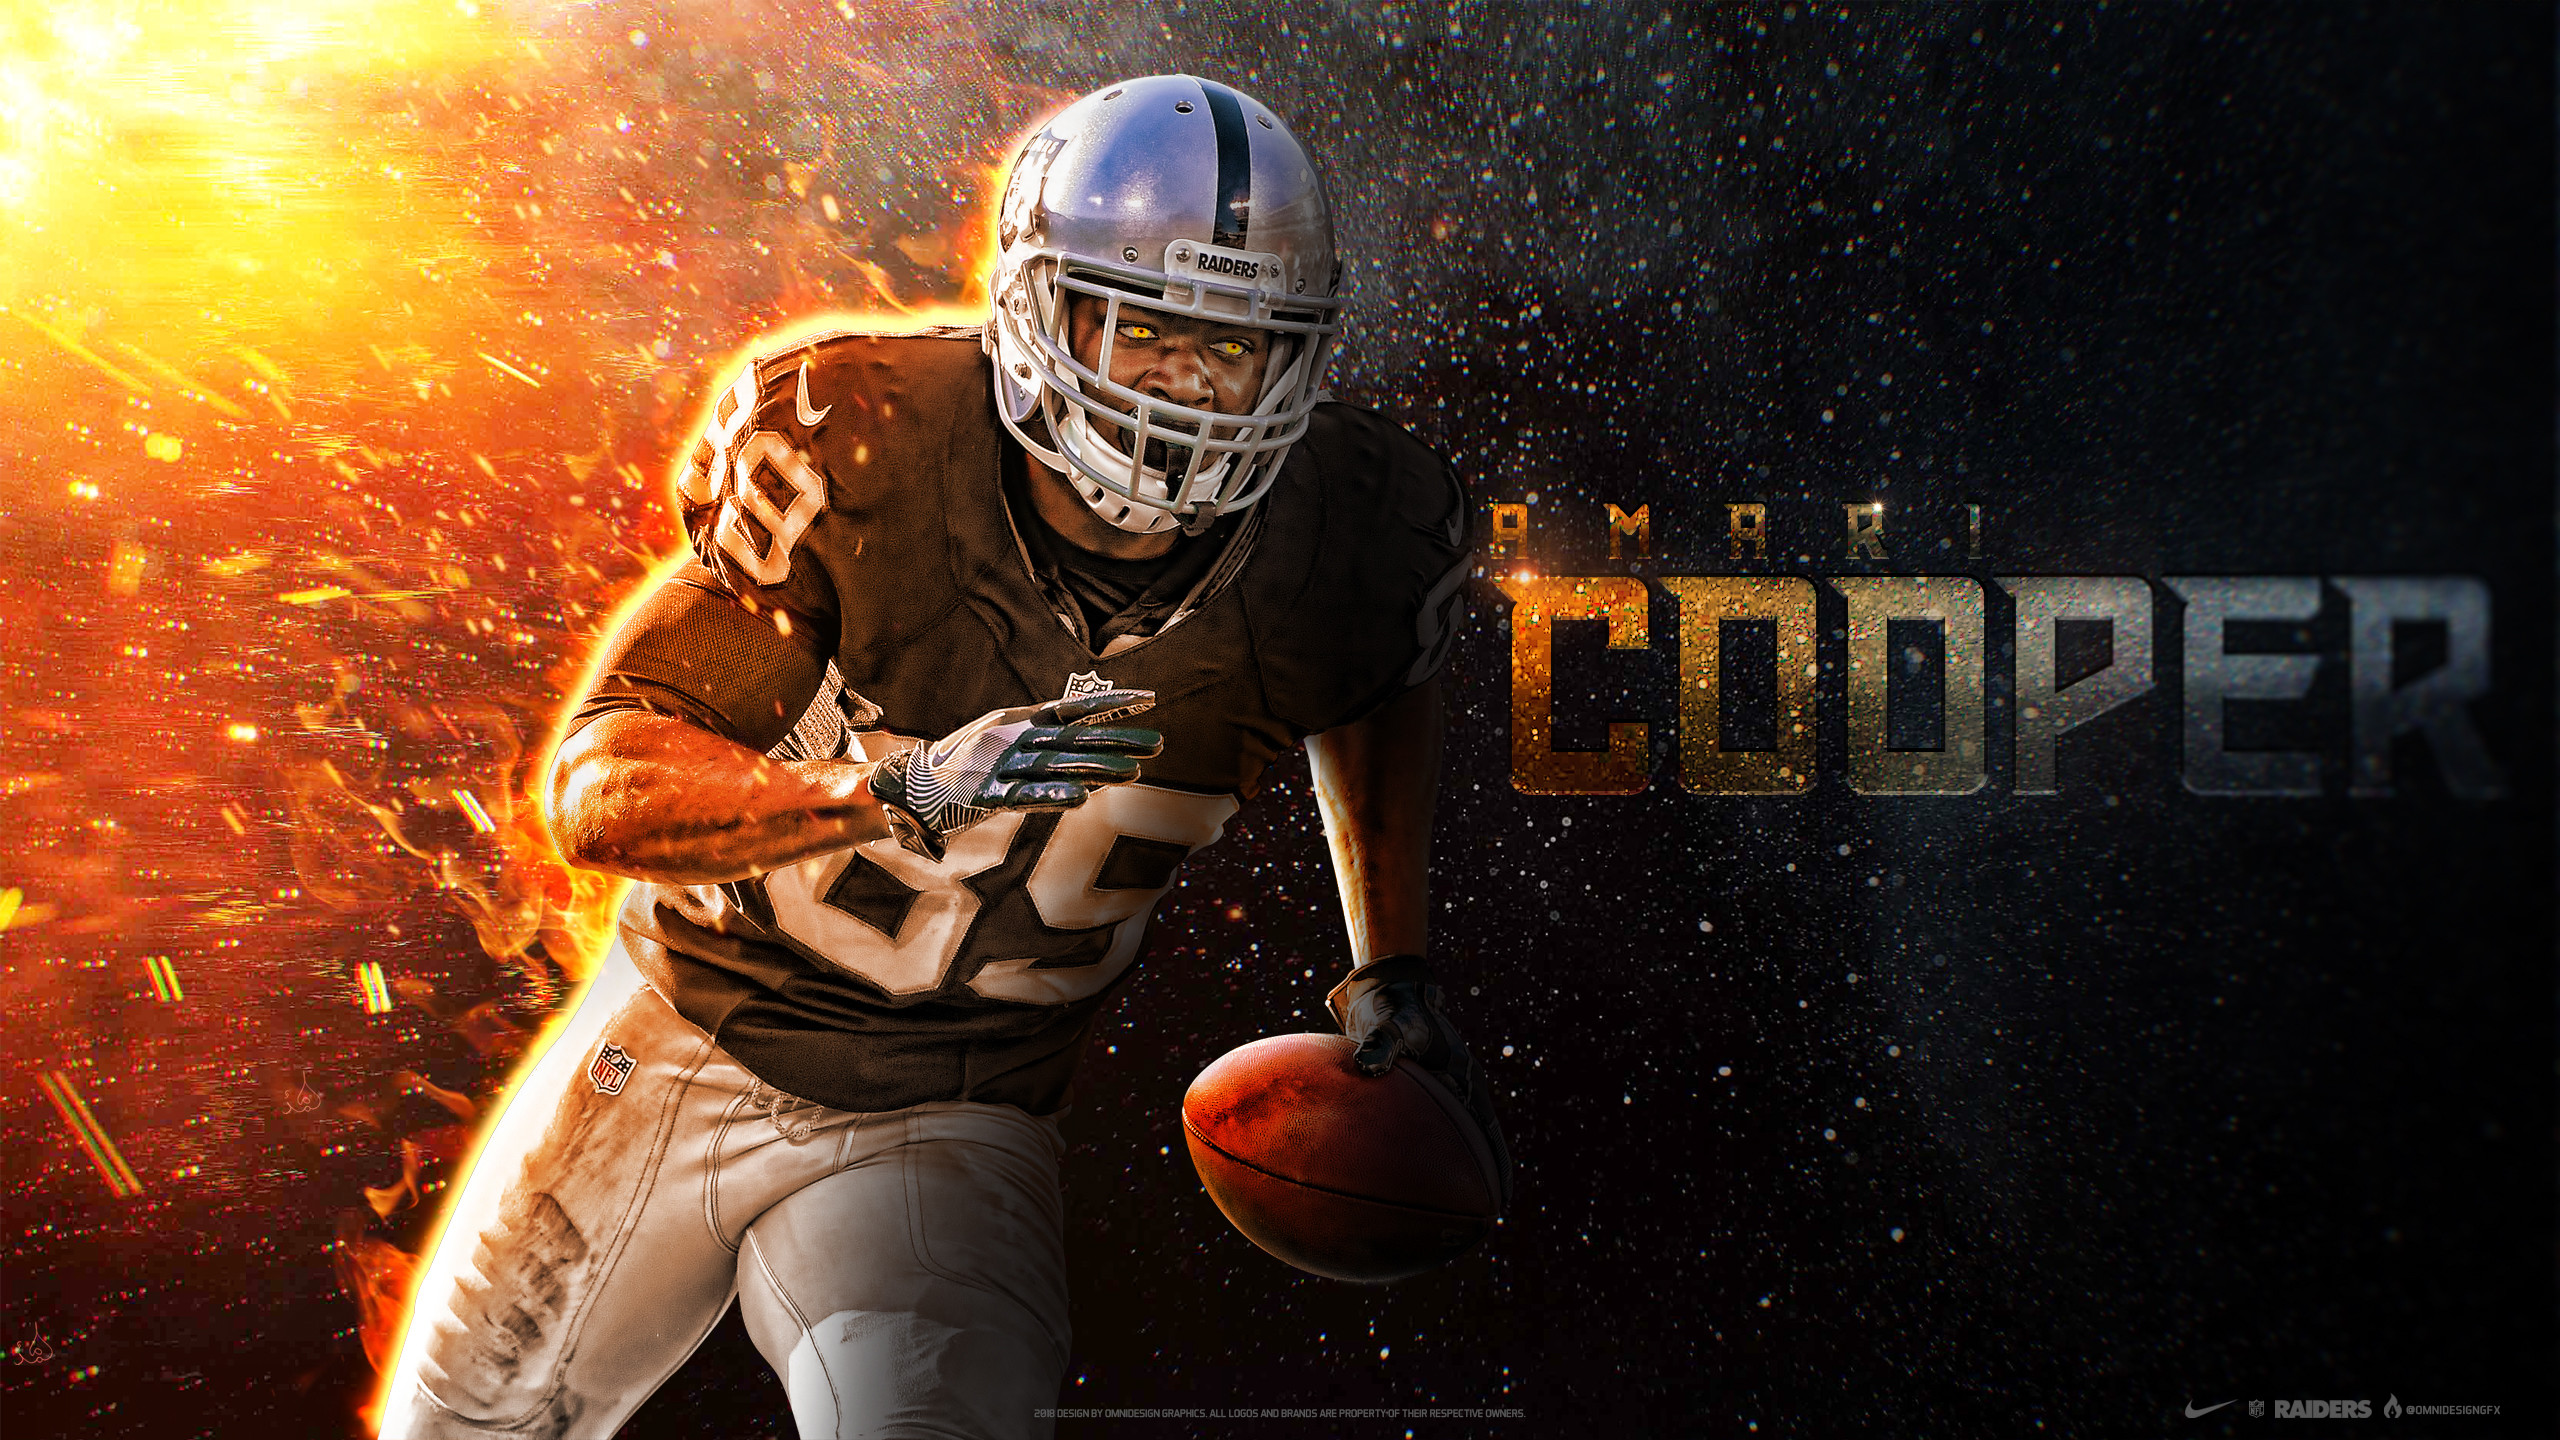 NFL Wallpaper for iPhone 5 (82+ images)